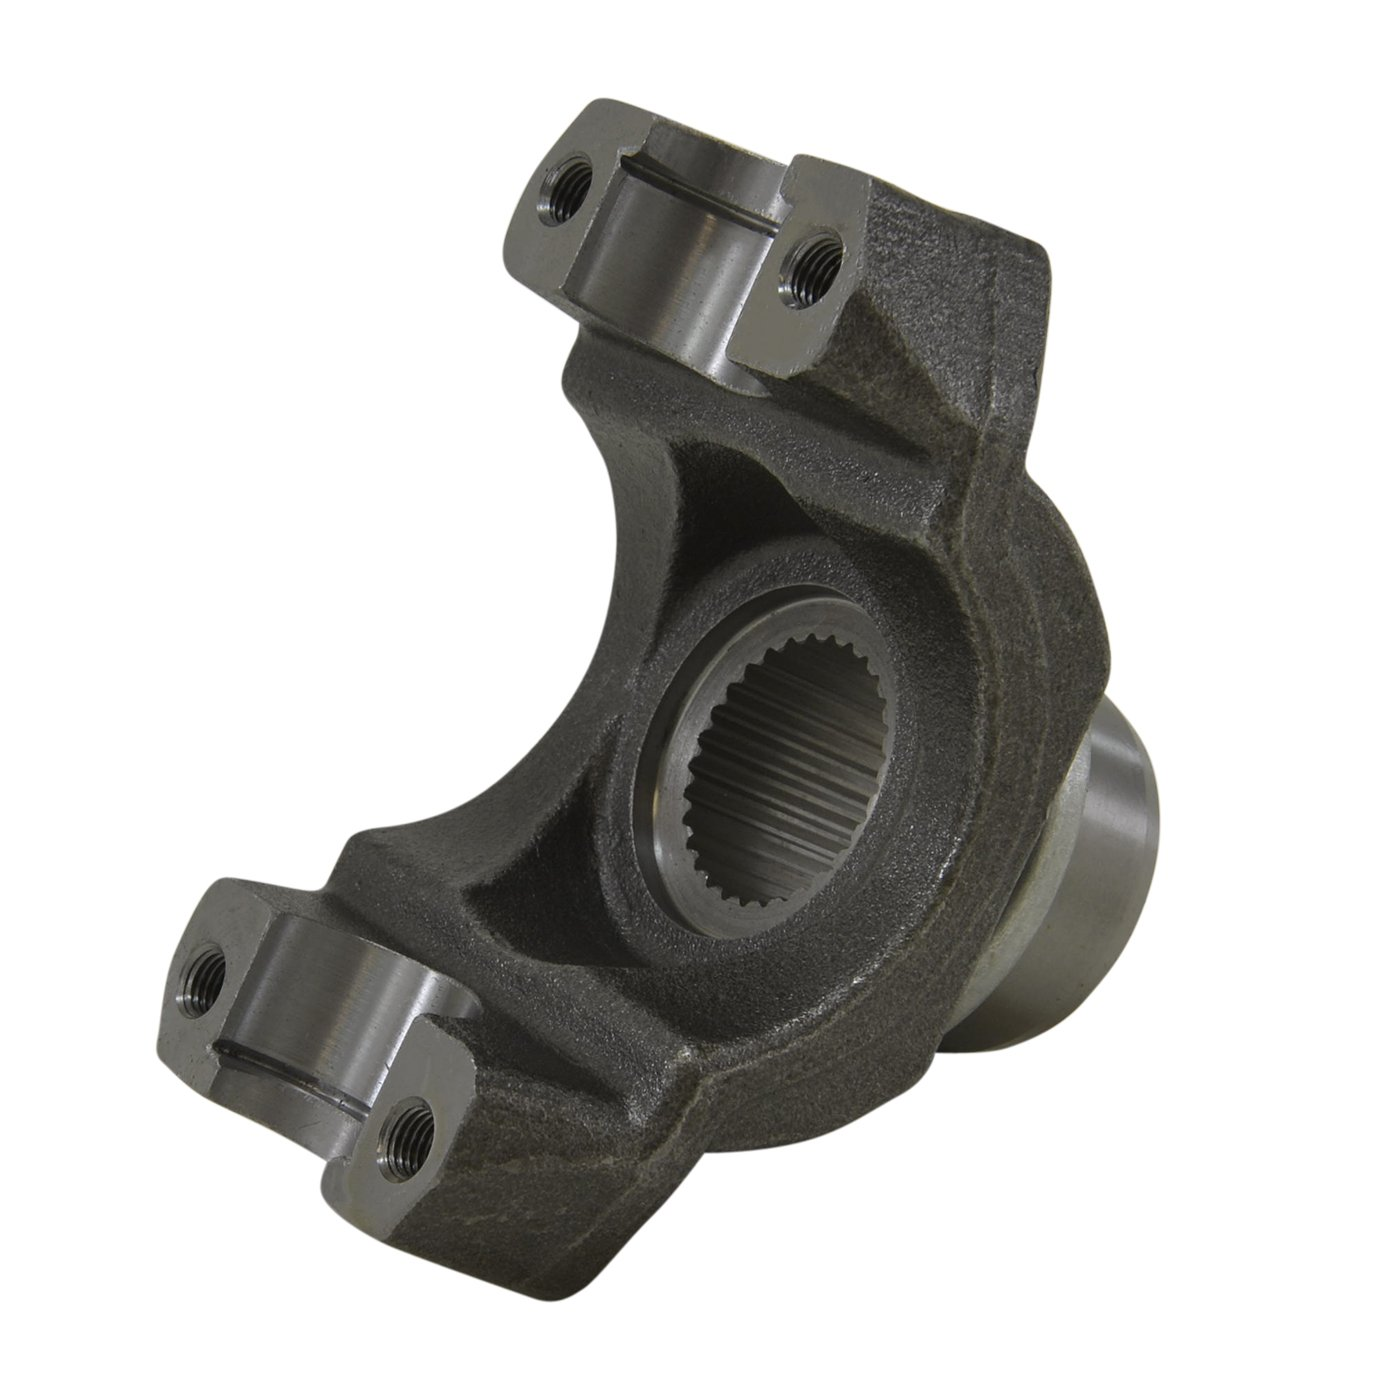 Yukon Gear & Axle (YY D60-1410-29S) Replacement Yoke for Dana 60/70 Differential